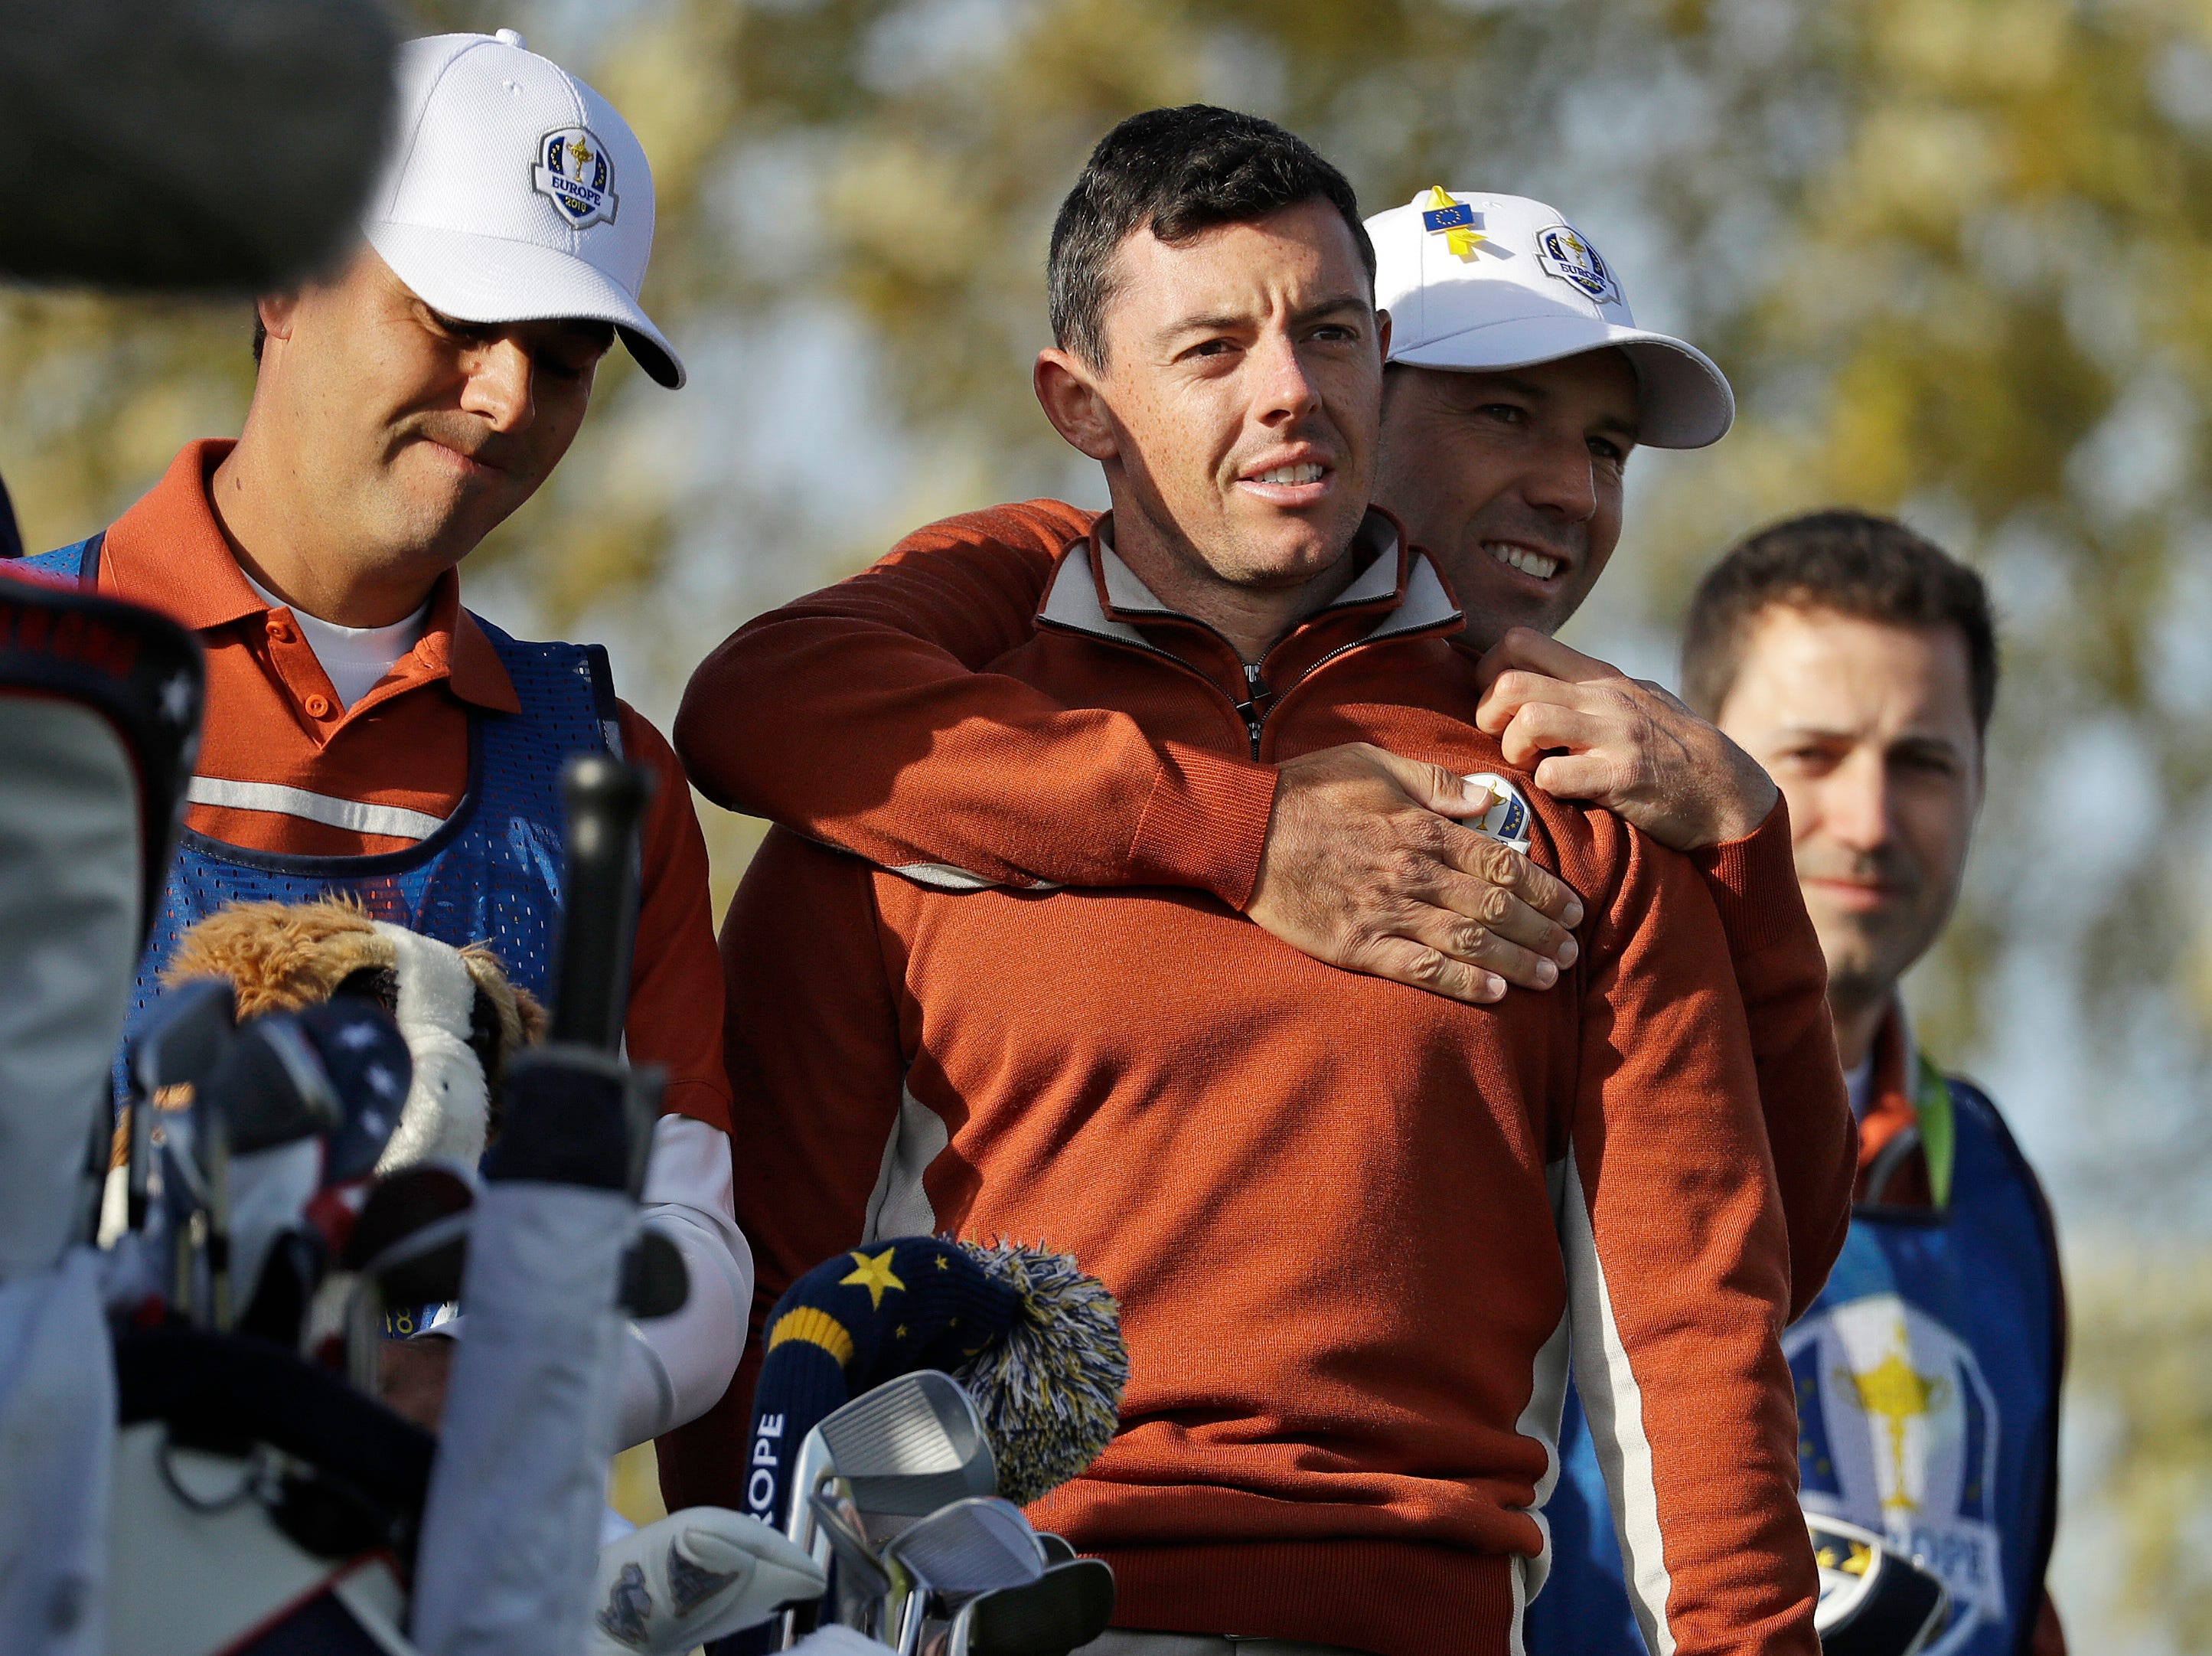 Europe's Sergio Garcia, second right, embraces Europe's Rory McIlroy during a fourball match on the second day of the 42nd Ryder Cup at Le Golf National outside Paris.